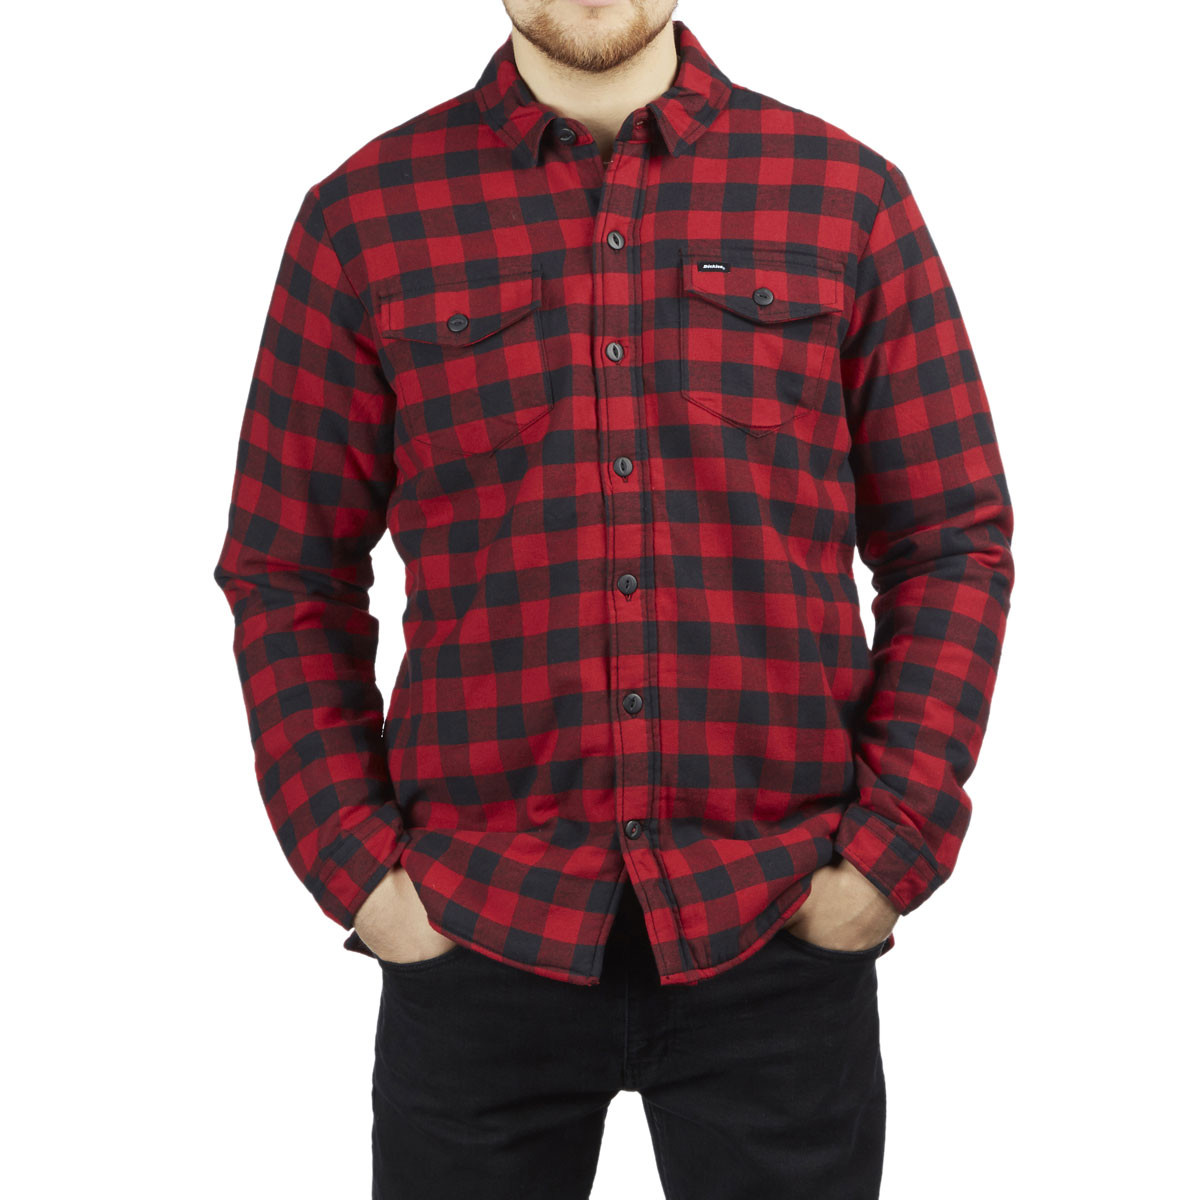 Dickies Flannel Shirt Sherpa Lined Jacket - Rinsed Green Black ... 63d680c7c96